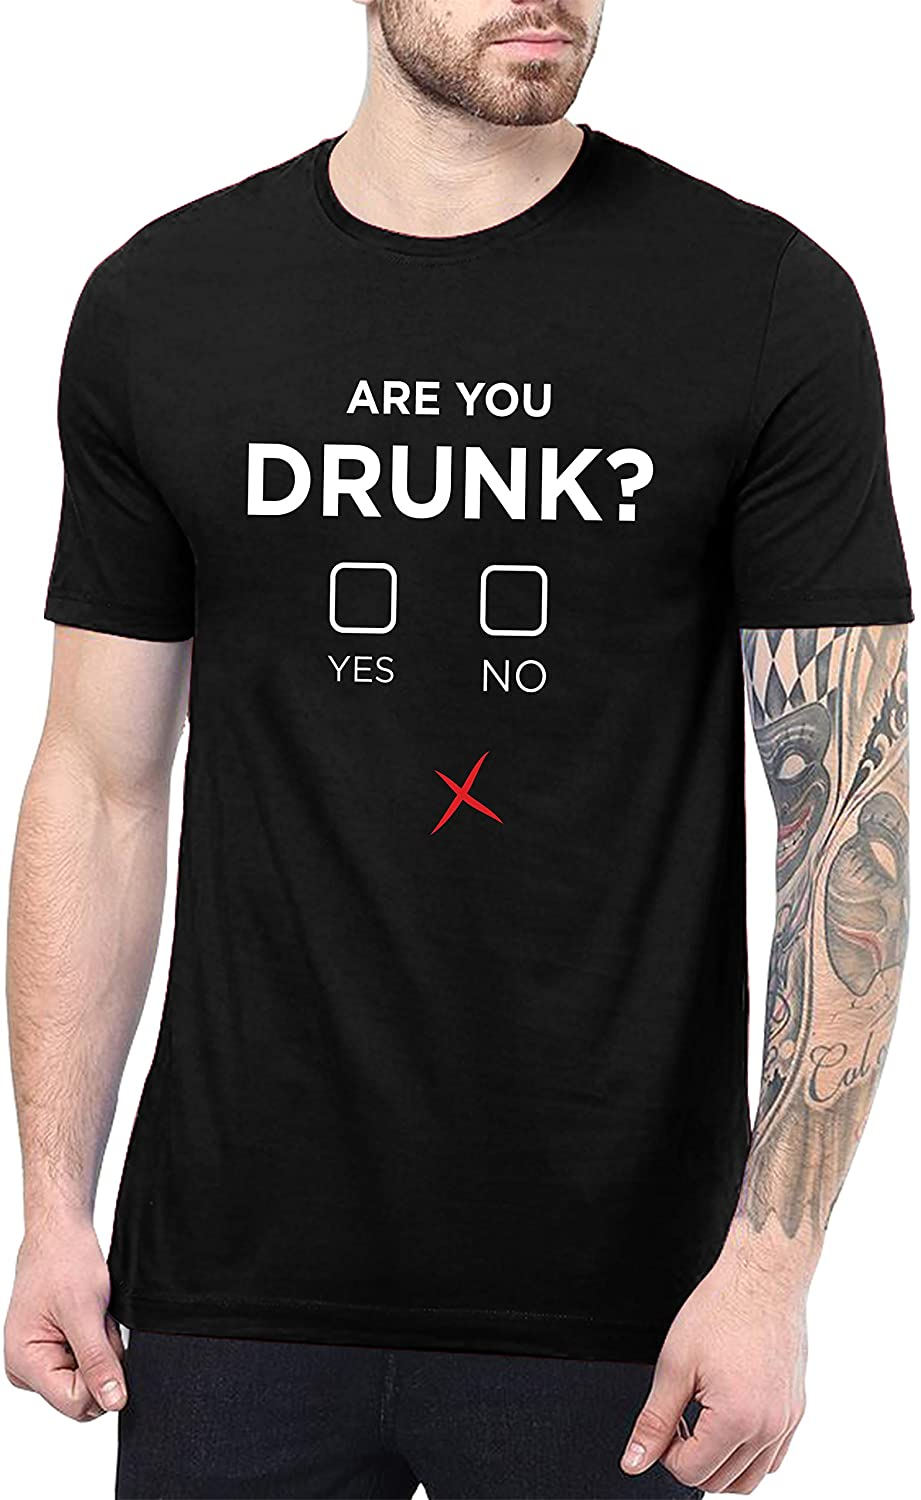 Funny T Shirts for Men - are You Drunk Graphic Tees for Men